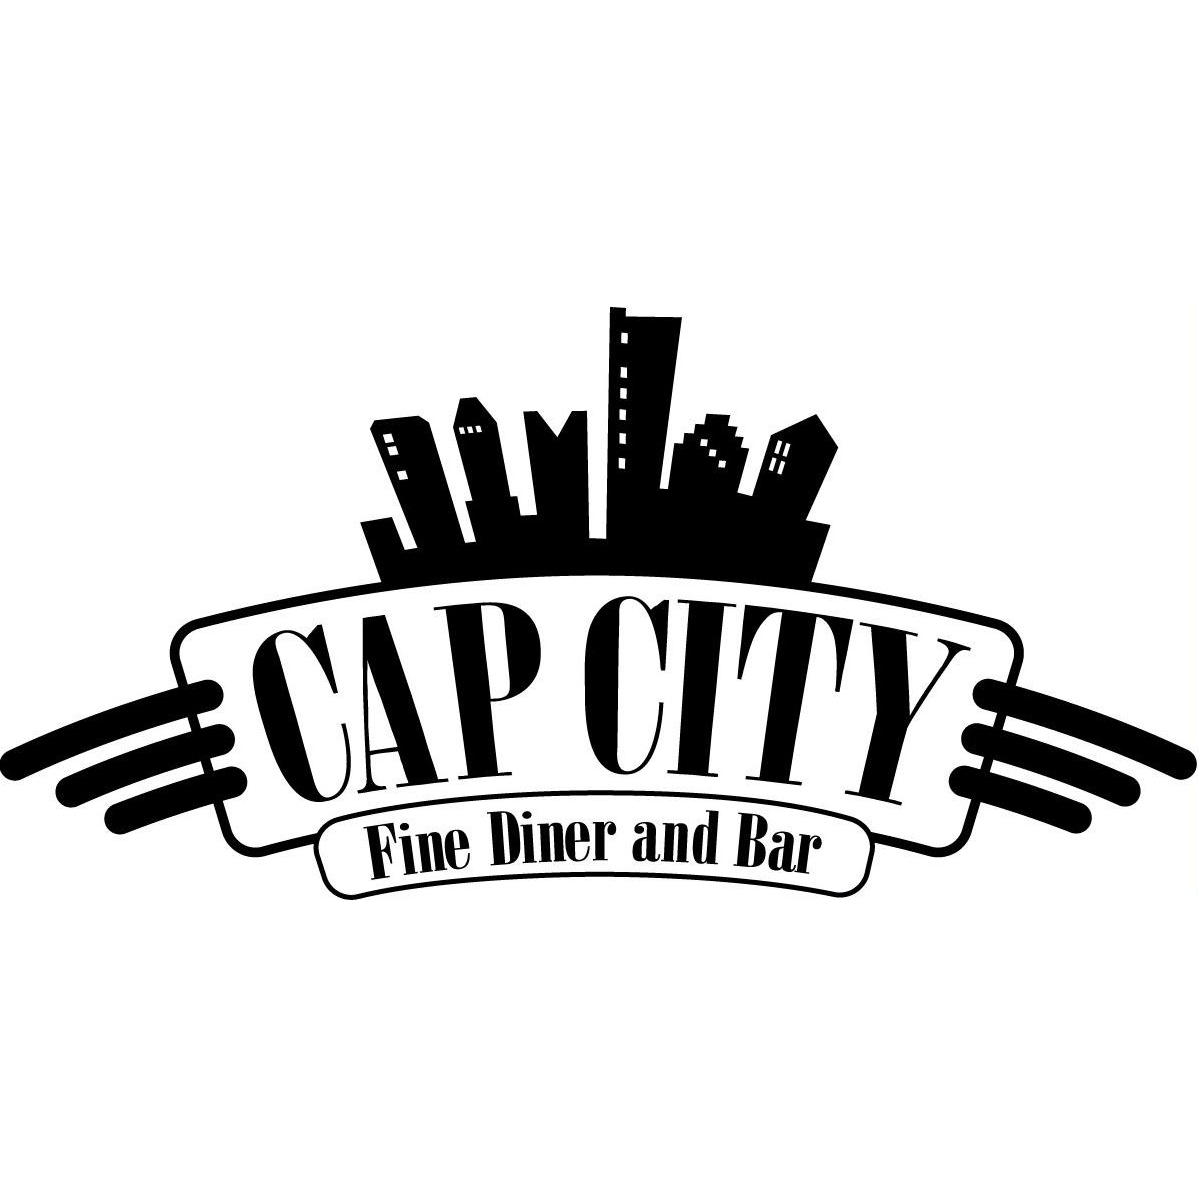 image of Cap City Fine Diner and Bar